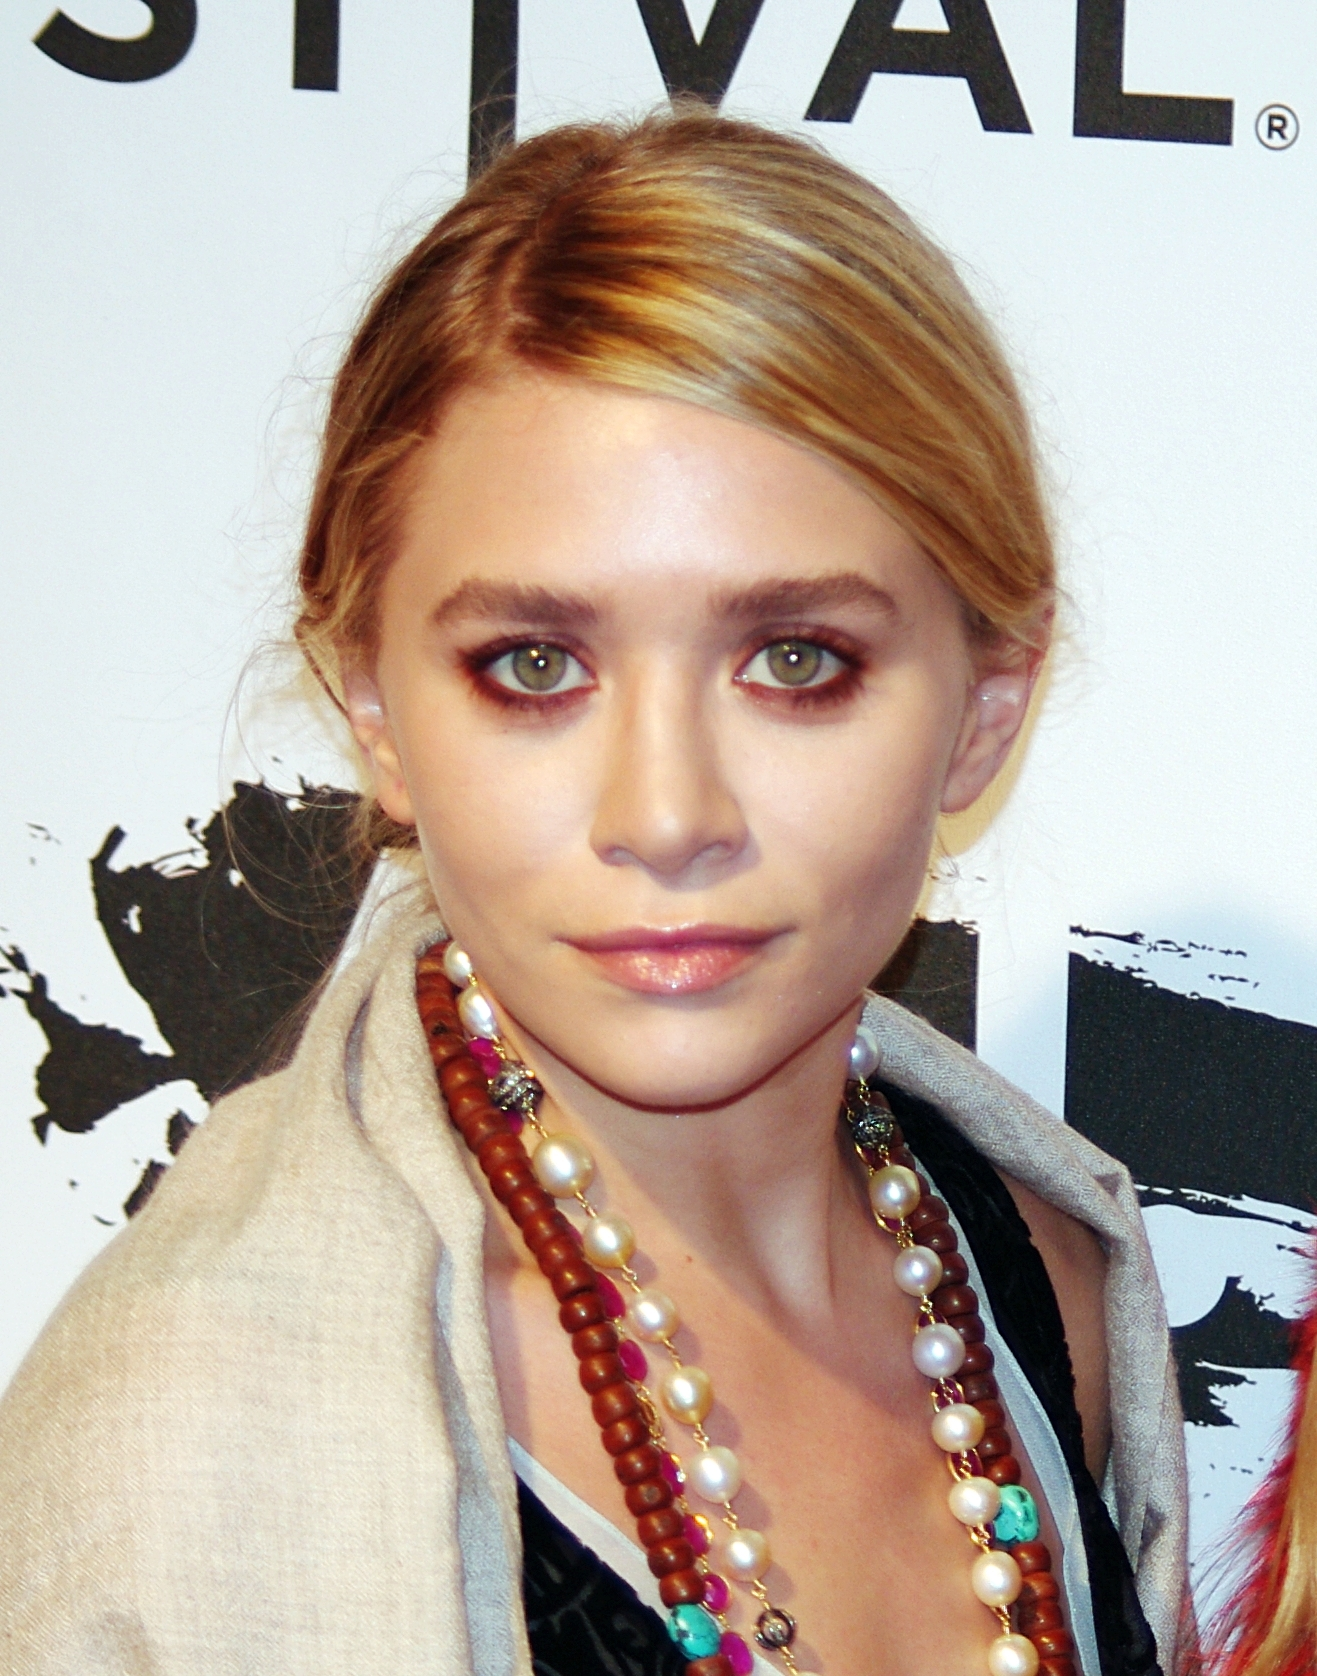 The 32-year old daughter of father David Olsen  and mother Jarnette Olsen Ashley Olsen in 2018 photo. Ashley Olsen earned a  million dollar salary - leaving the net worth at 150 million in 2018